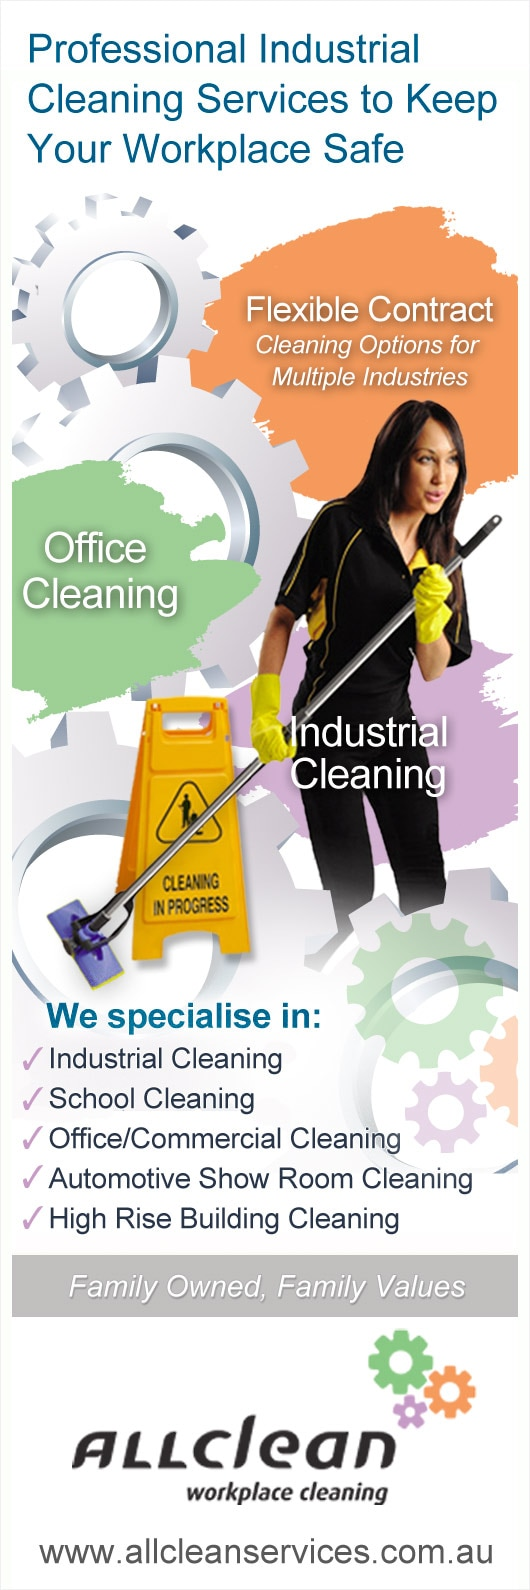 allclean property services plus commercial industrial cleaning allclean property services plus promotion